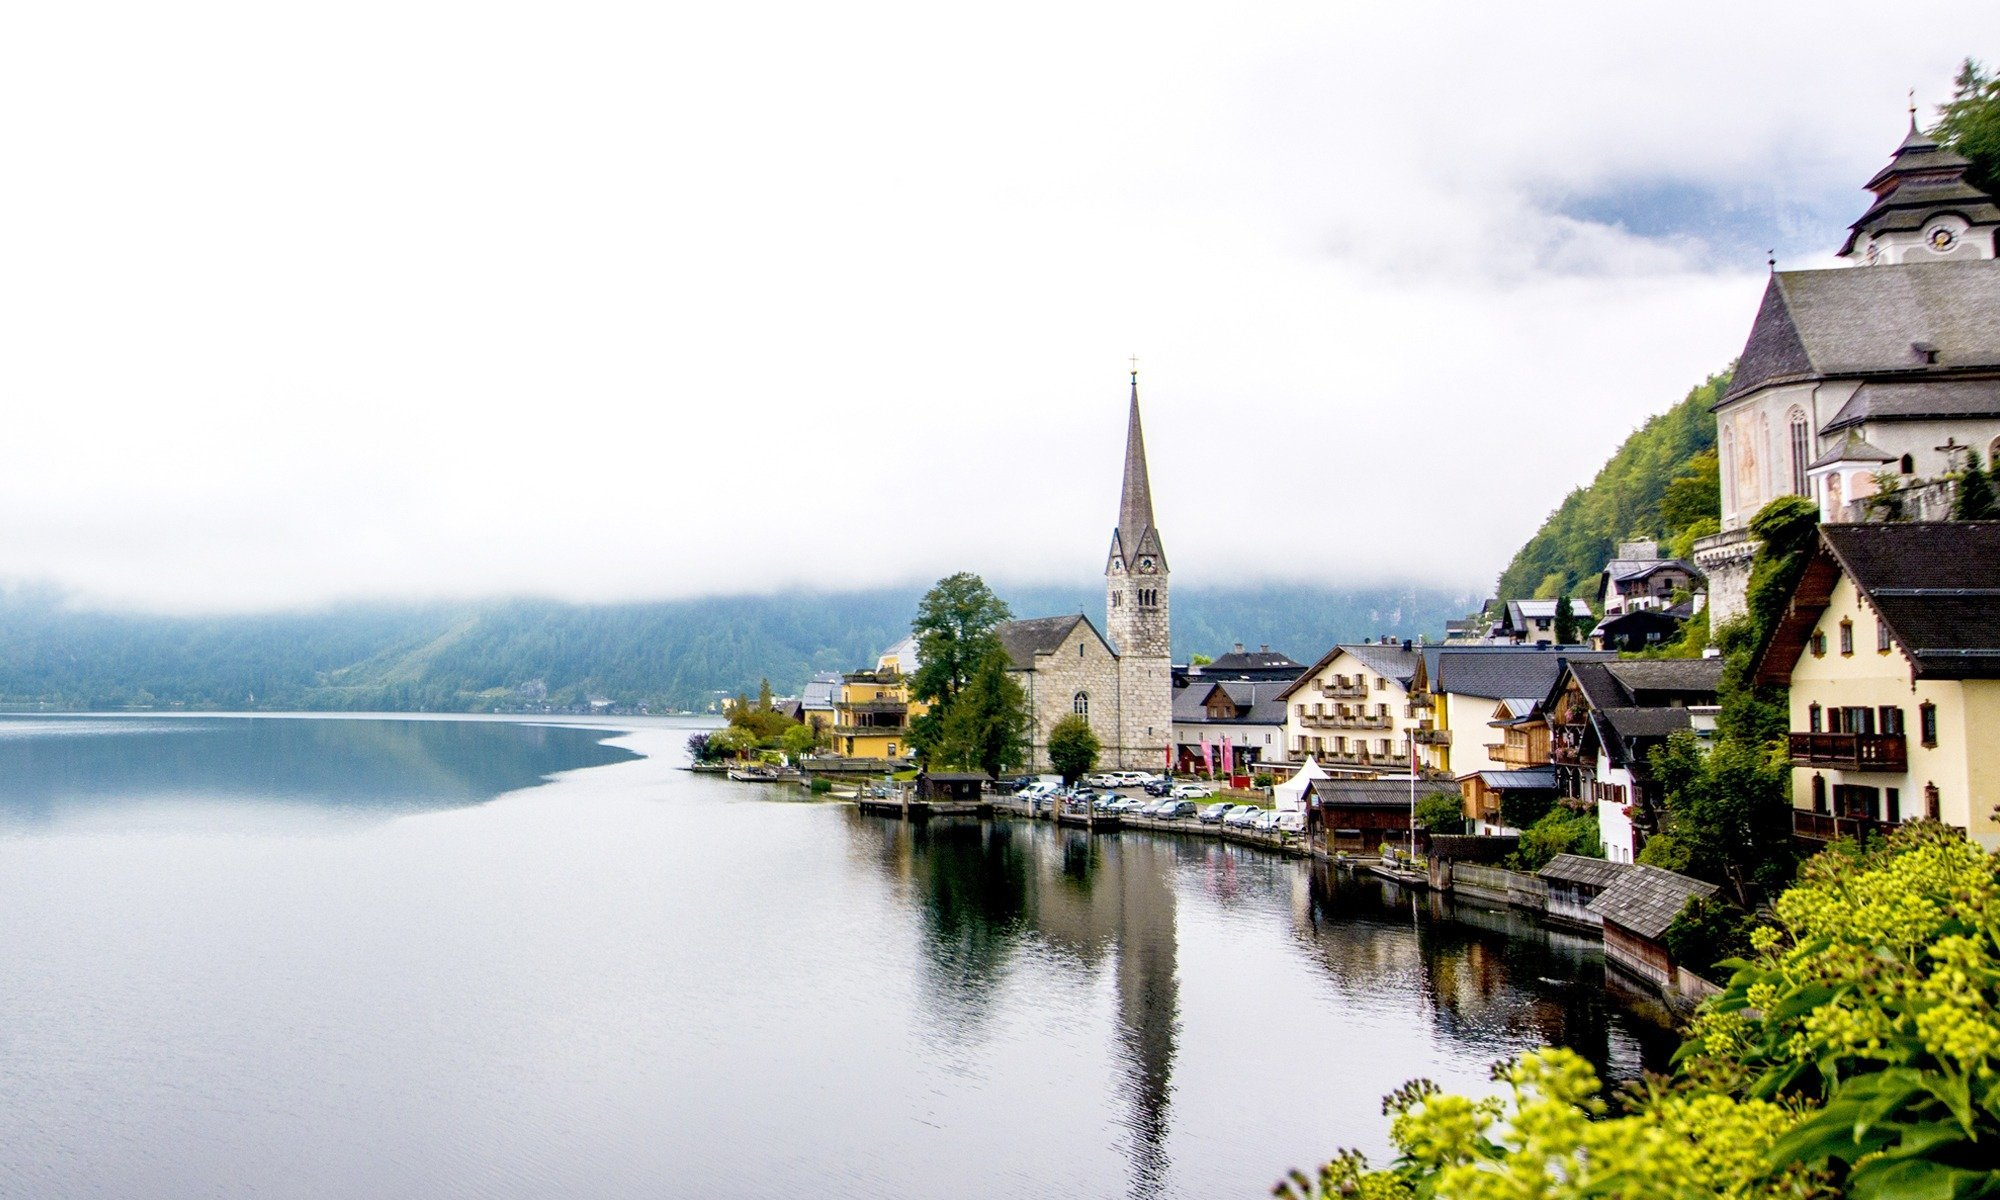 A calm blue lake mirroring the sky, mountain ranges setting a picture-perfect background, and pastel lakeside houses lending the historic town a storybook vibe – I did my best but words fail to do this town justice. If you're in for a visual tour or ready to start planning your trip, this Hallstatt travel guide will surely leave you in love with this town.